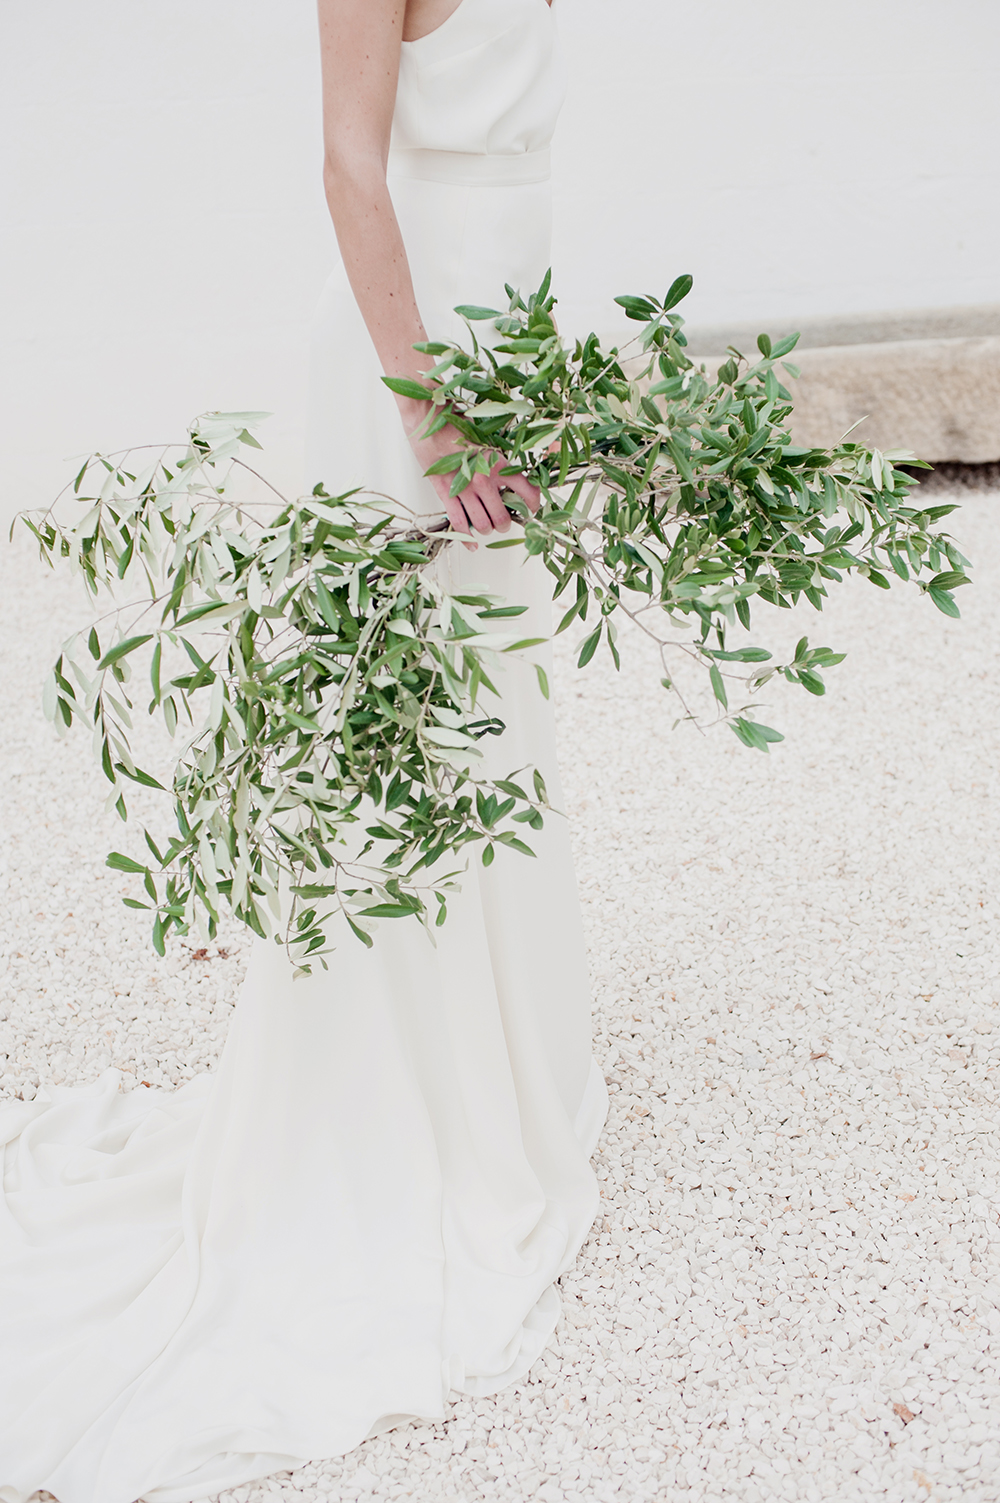 Puglia Wedding Creative Copy 0041